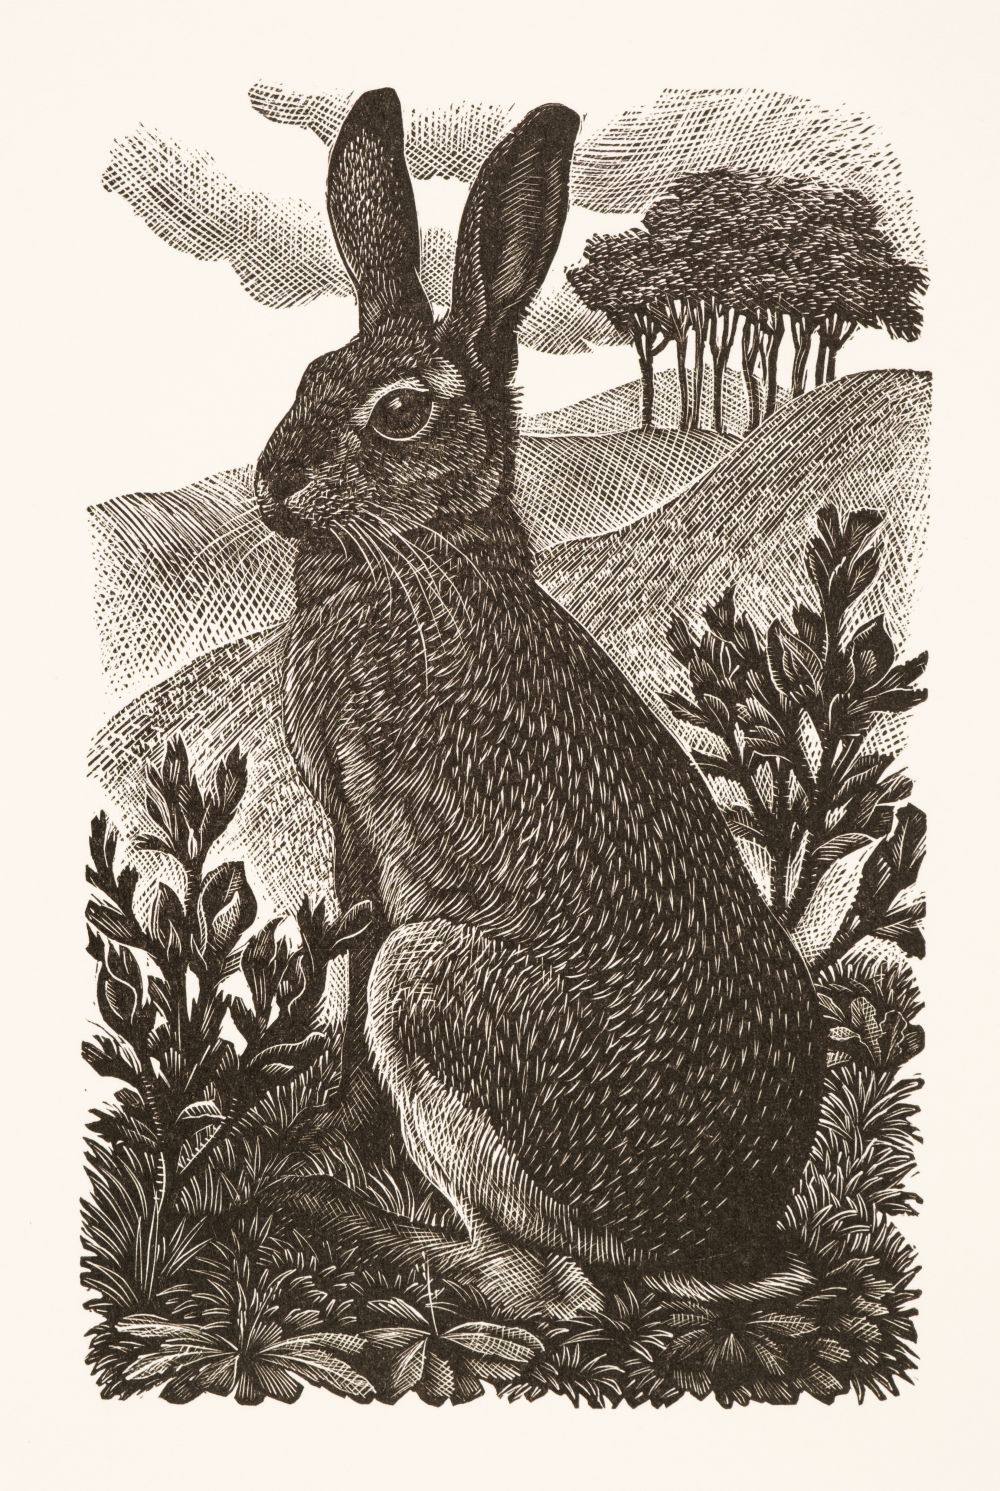 ARR * § Tunnicliffe (Charles Frederick1901-1978). Sitting Hare, 1949